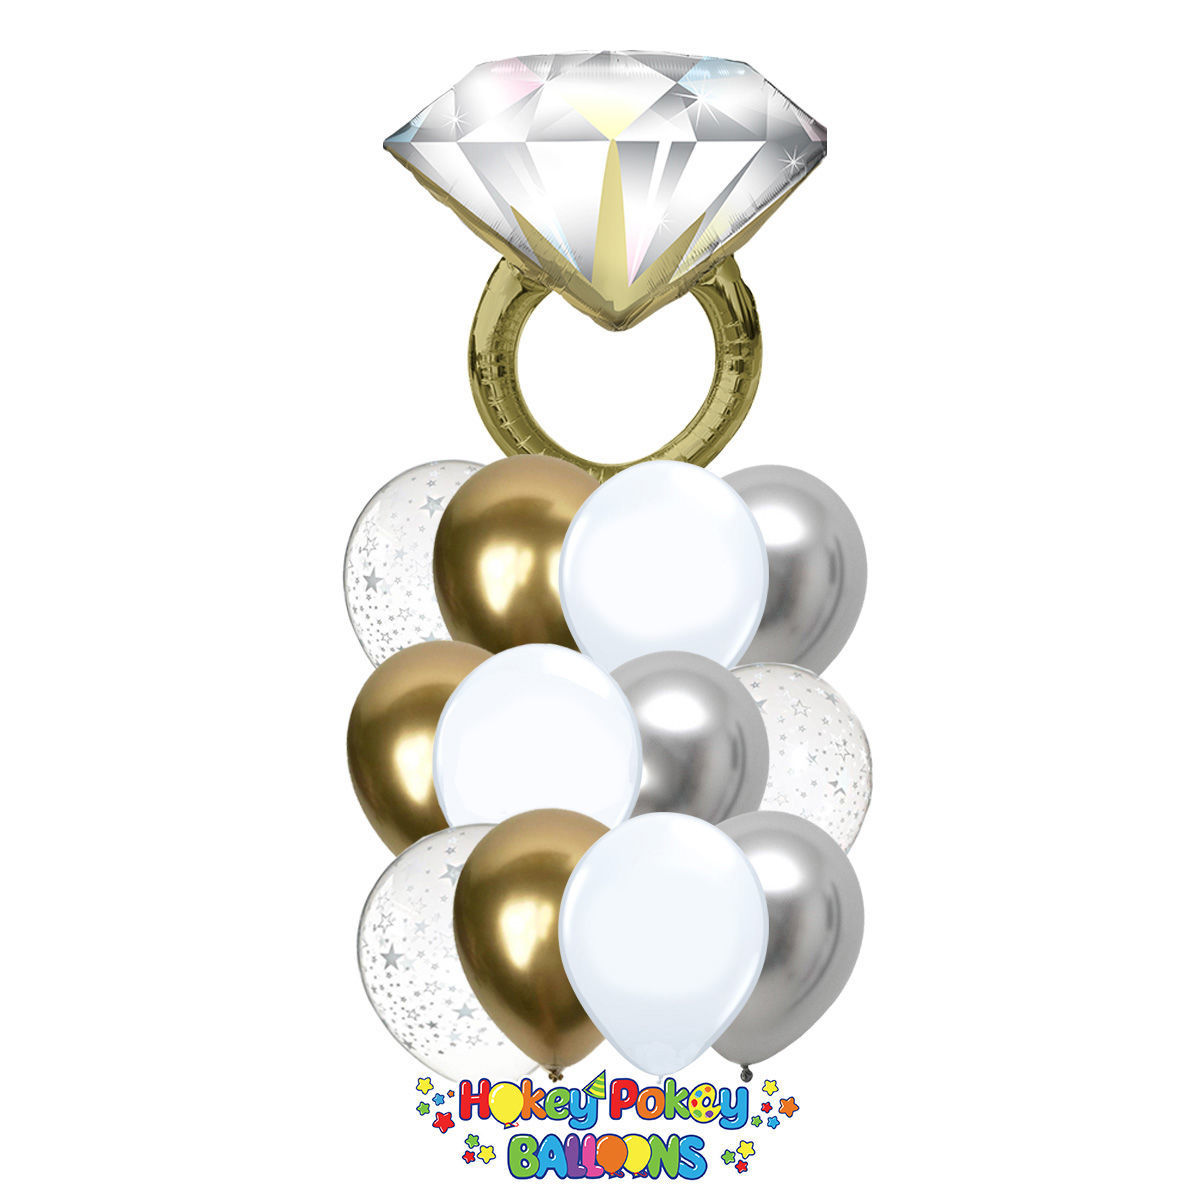 Picture of Luxury Diamond Ring - Balloon Bouquet of 13